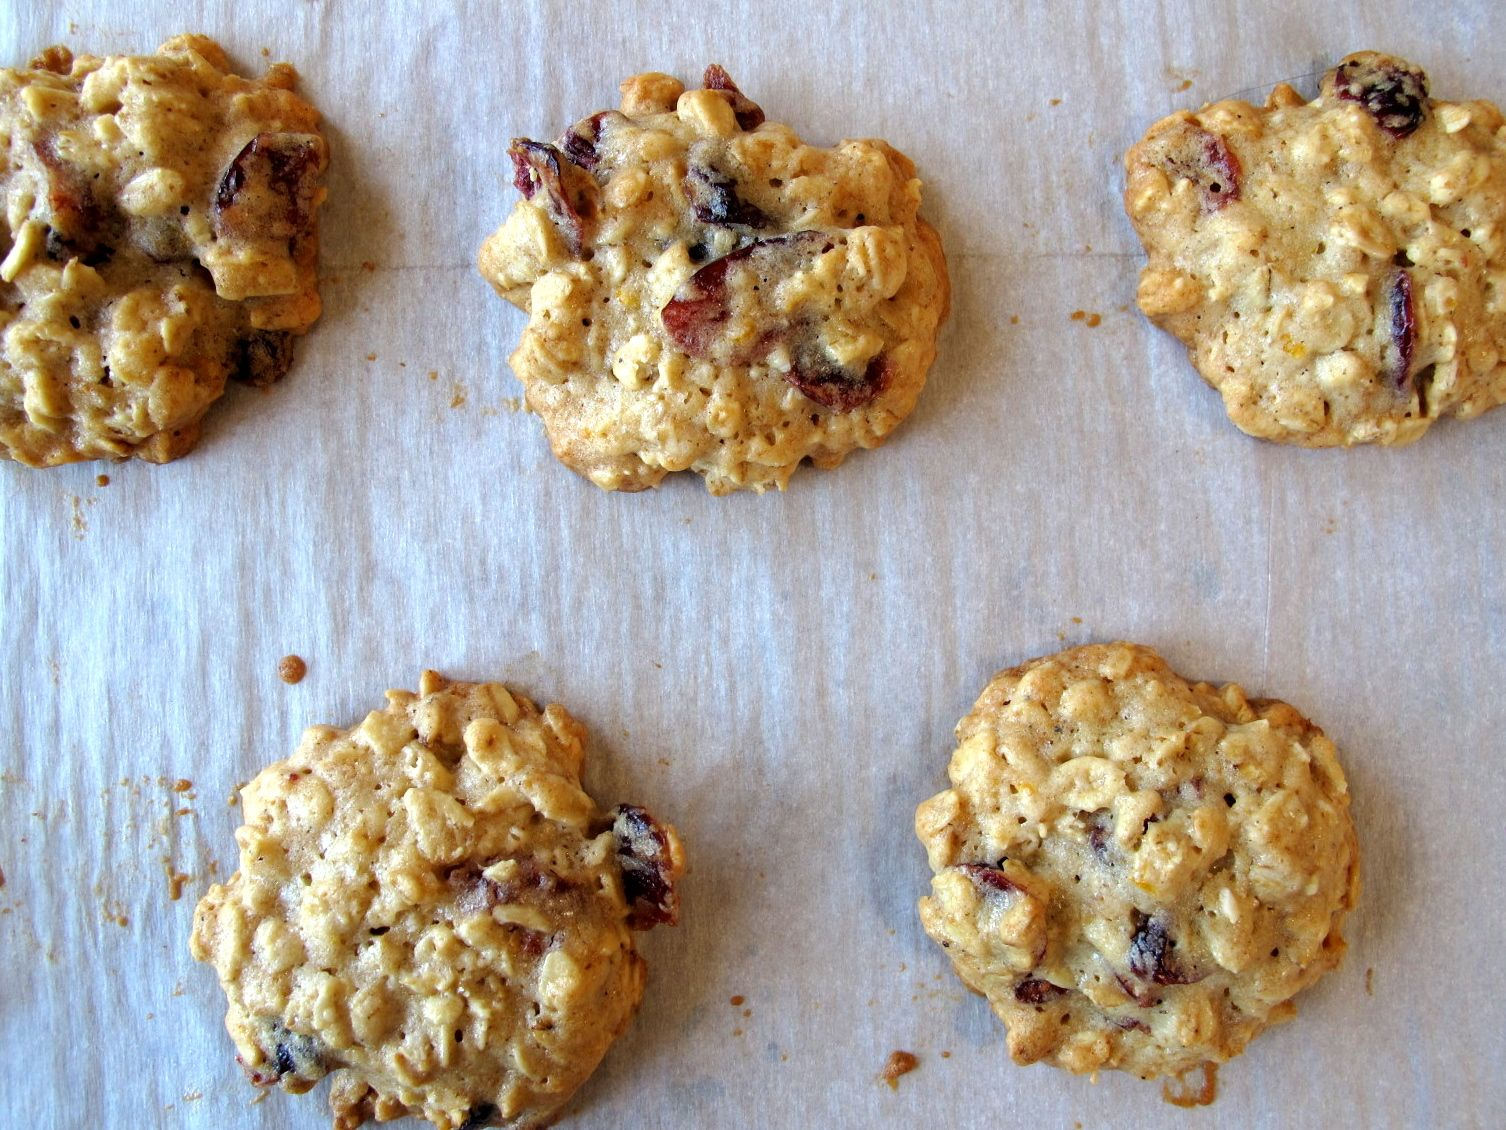 ... smitten kitchen ), and 104 Orange cardamom cranberry oatmeal cookies